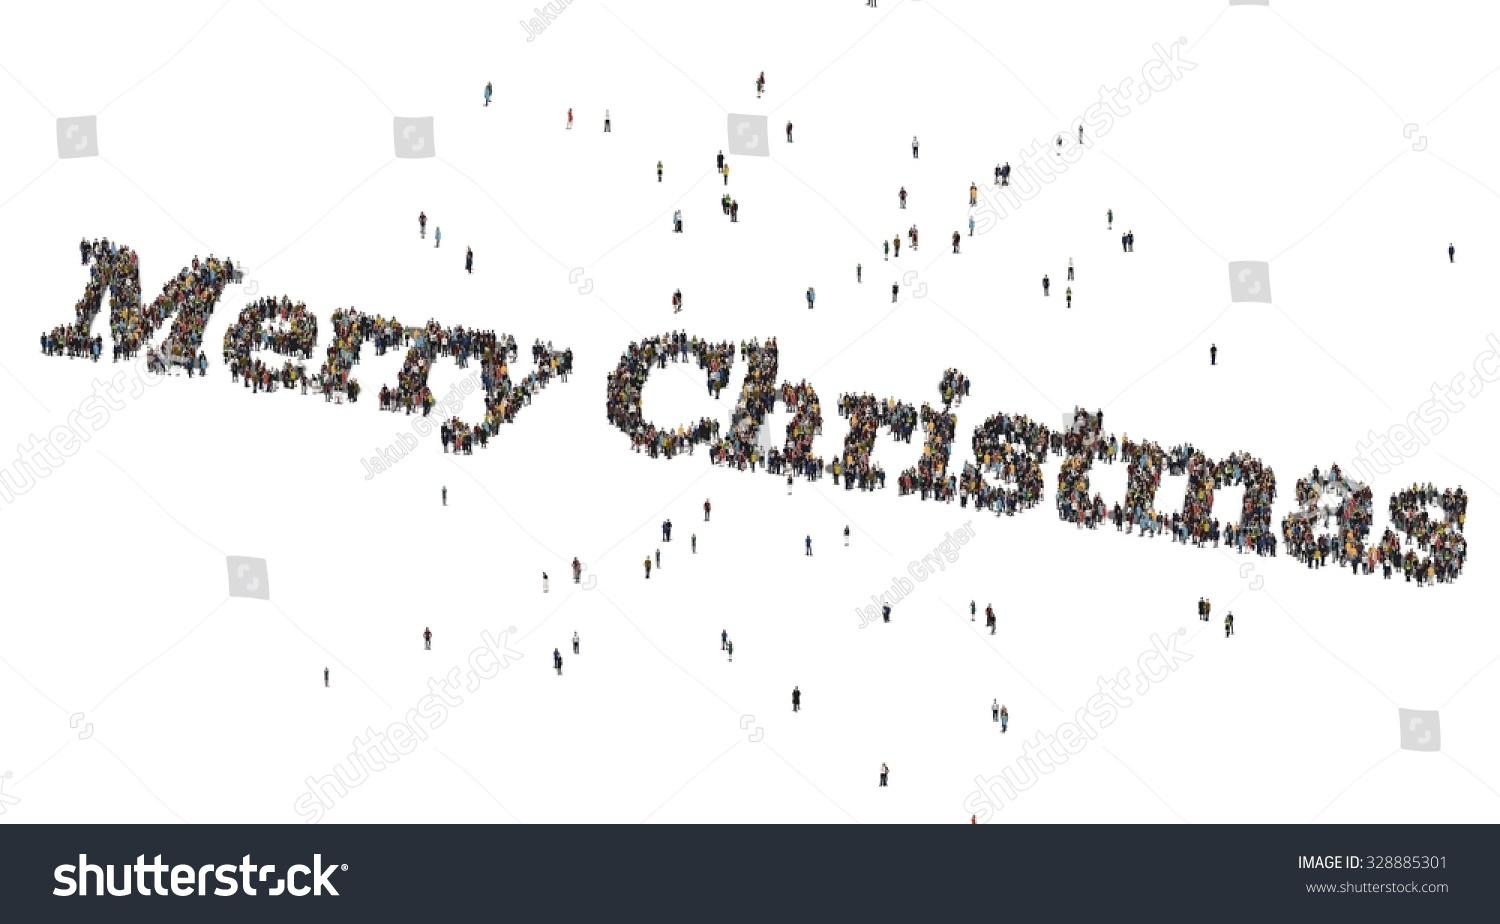 merry christmas words crowd from above